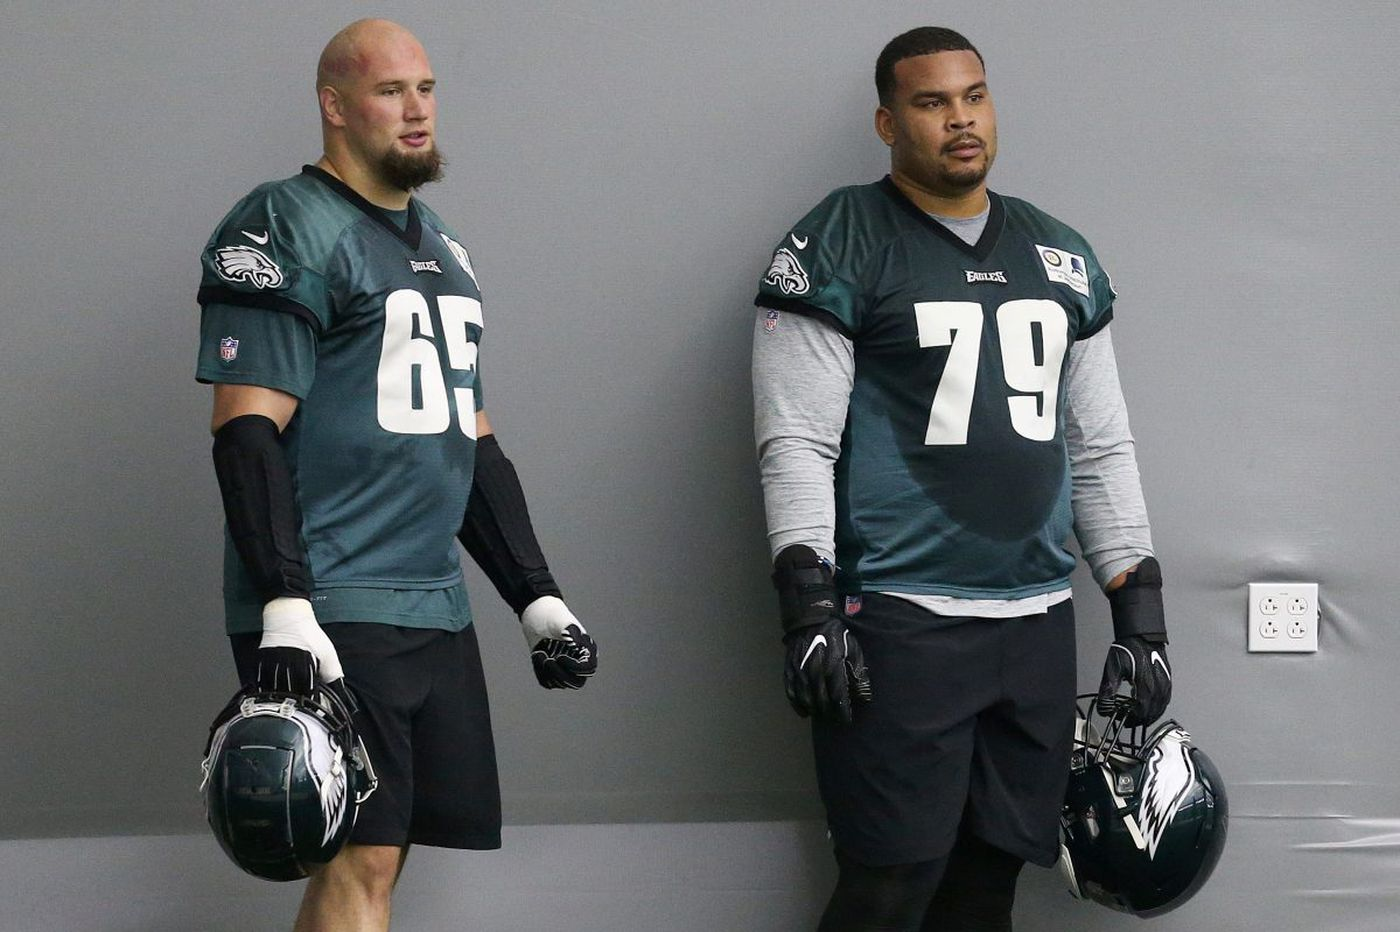 Eagles tackle Lane Johnson has found peace and respect on the right side